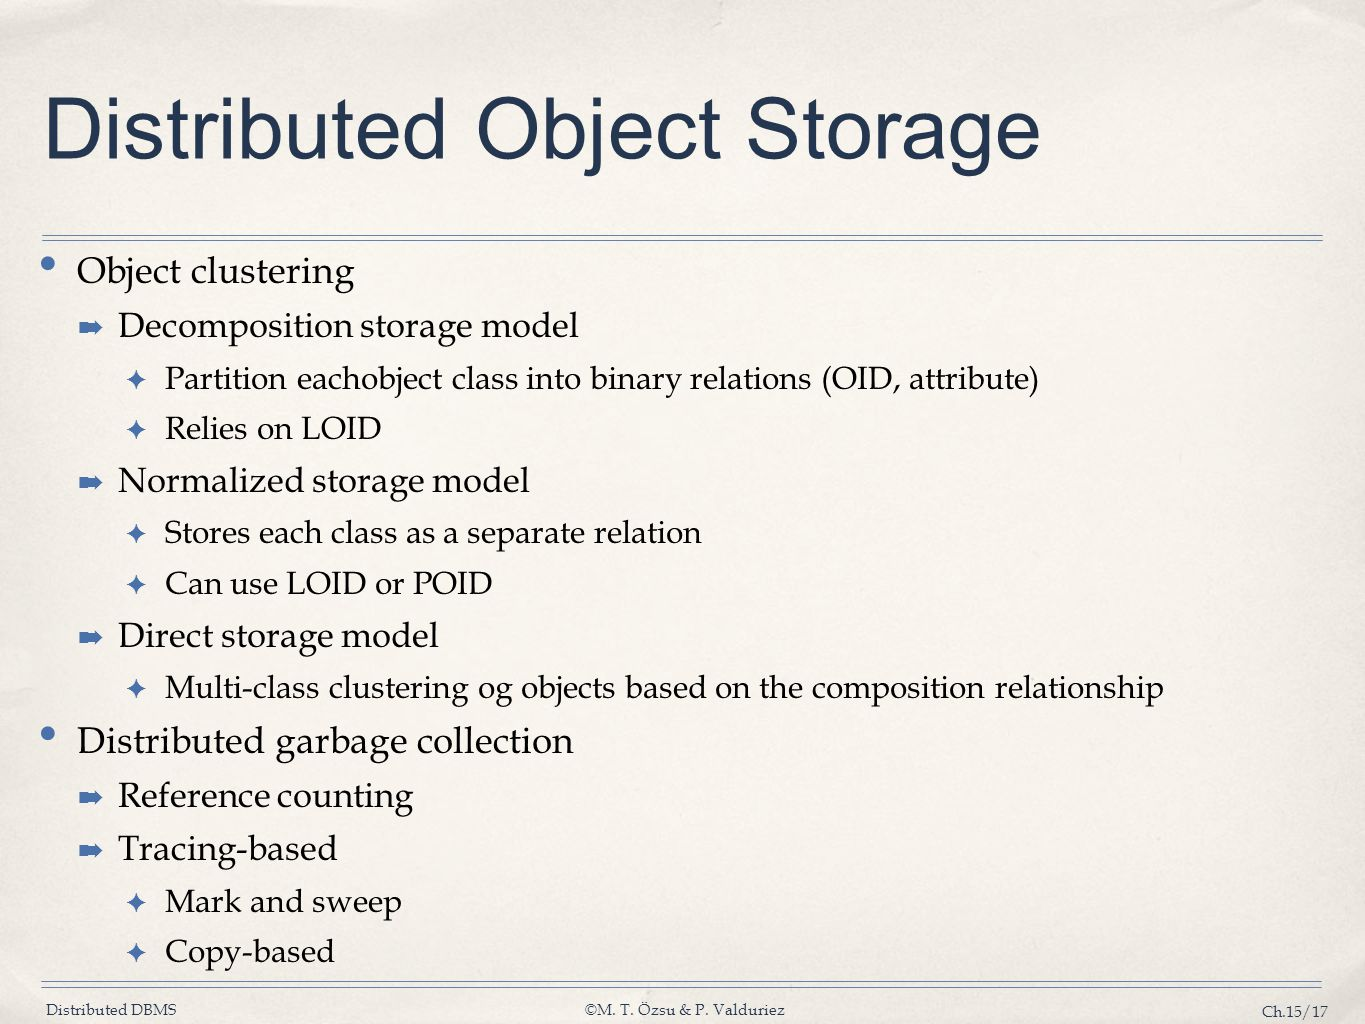 Distributed DBMS©M. T. Özsu & P. Valduriez Ch.15/17 Distributed Object Storage Object clustering ➡ Decomposition storage model ✦ Partition eachobject